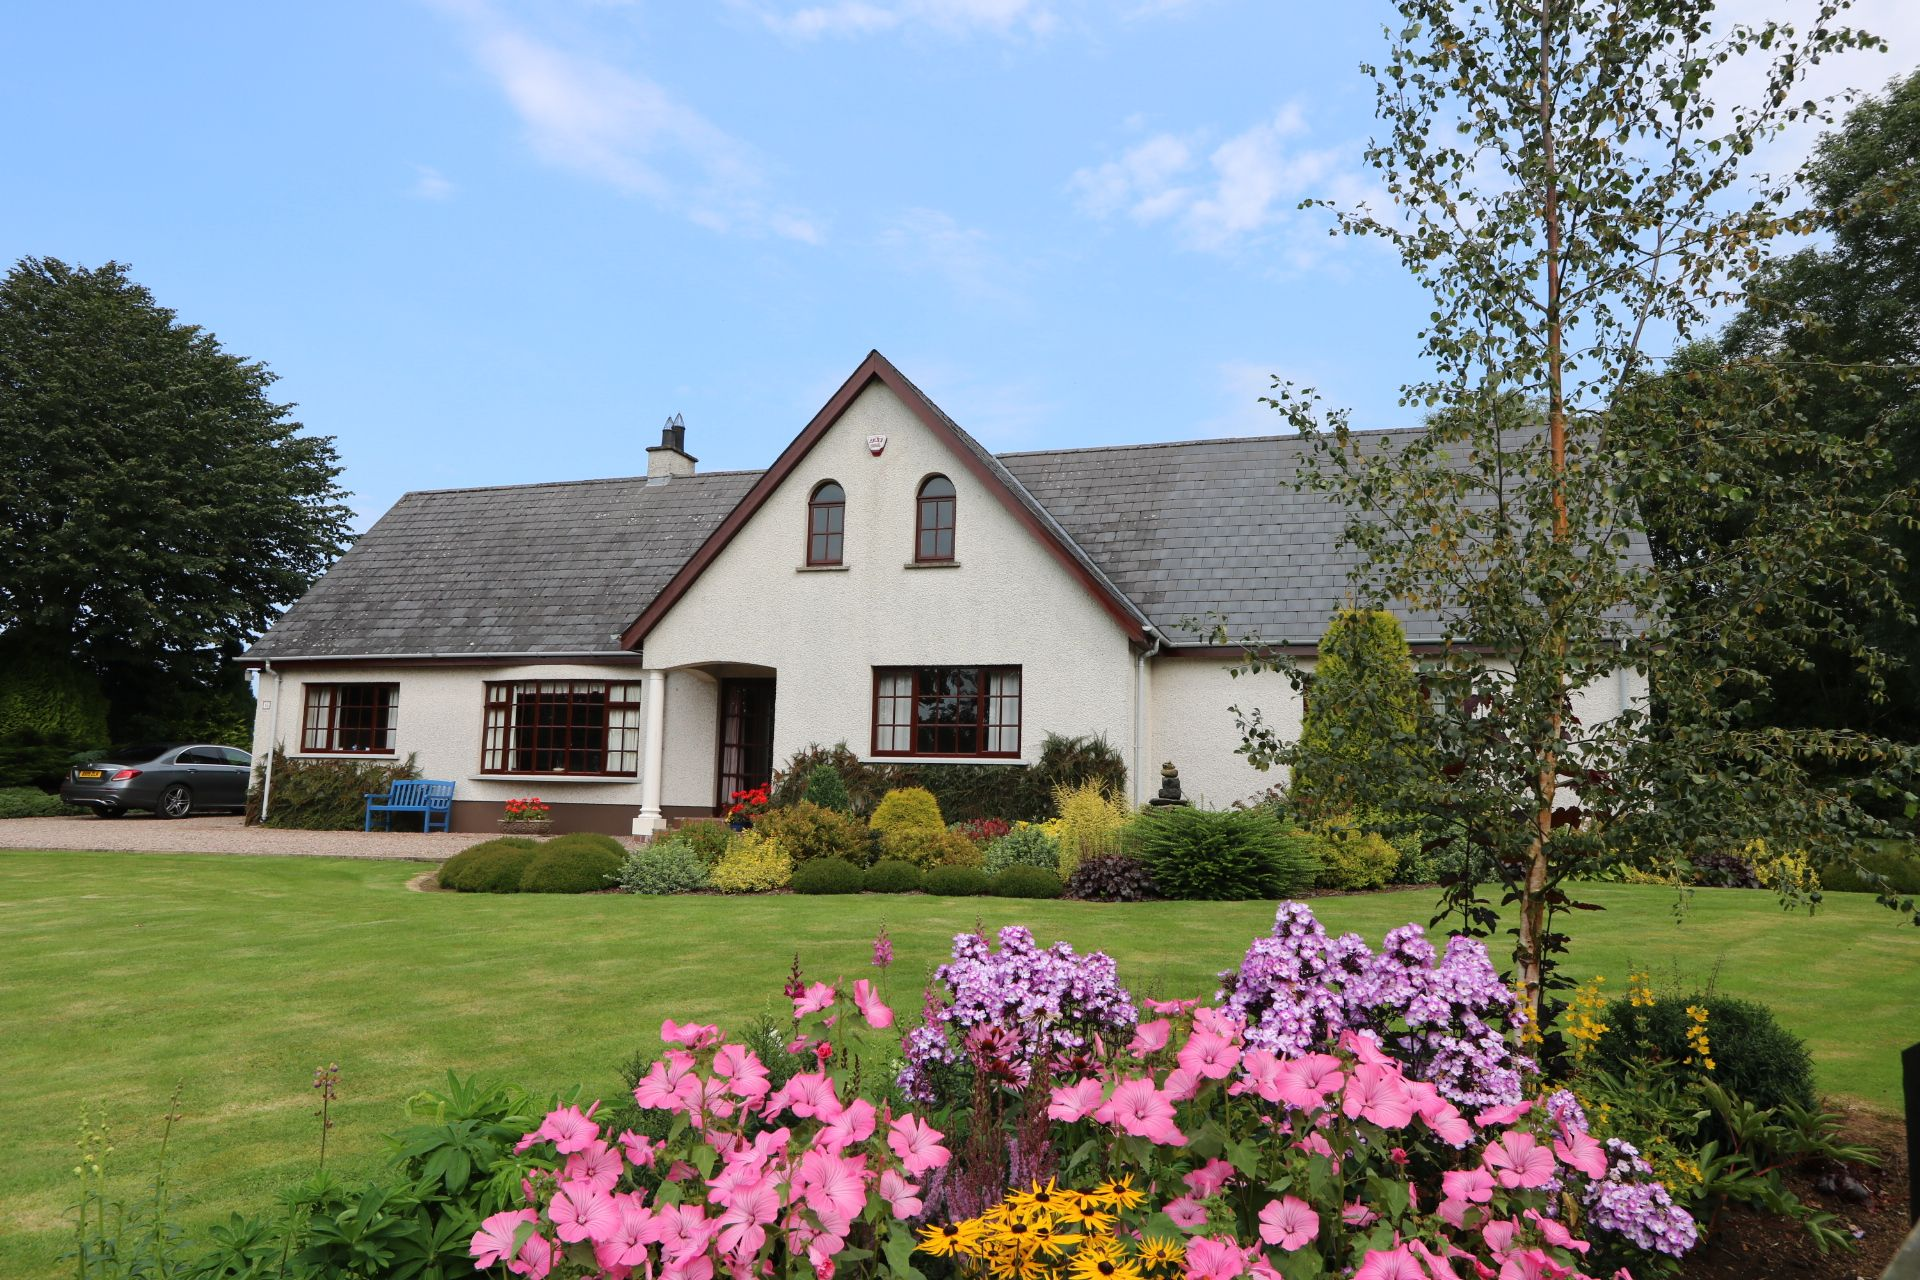 4 bedroom detached bungalow Under Offer in Antrim - Photograph 1